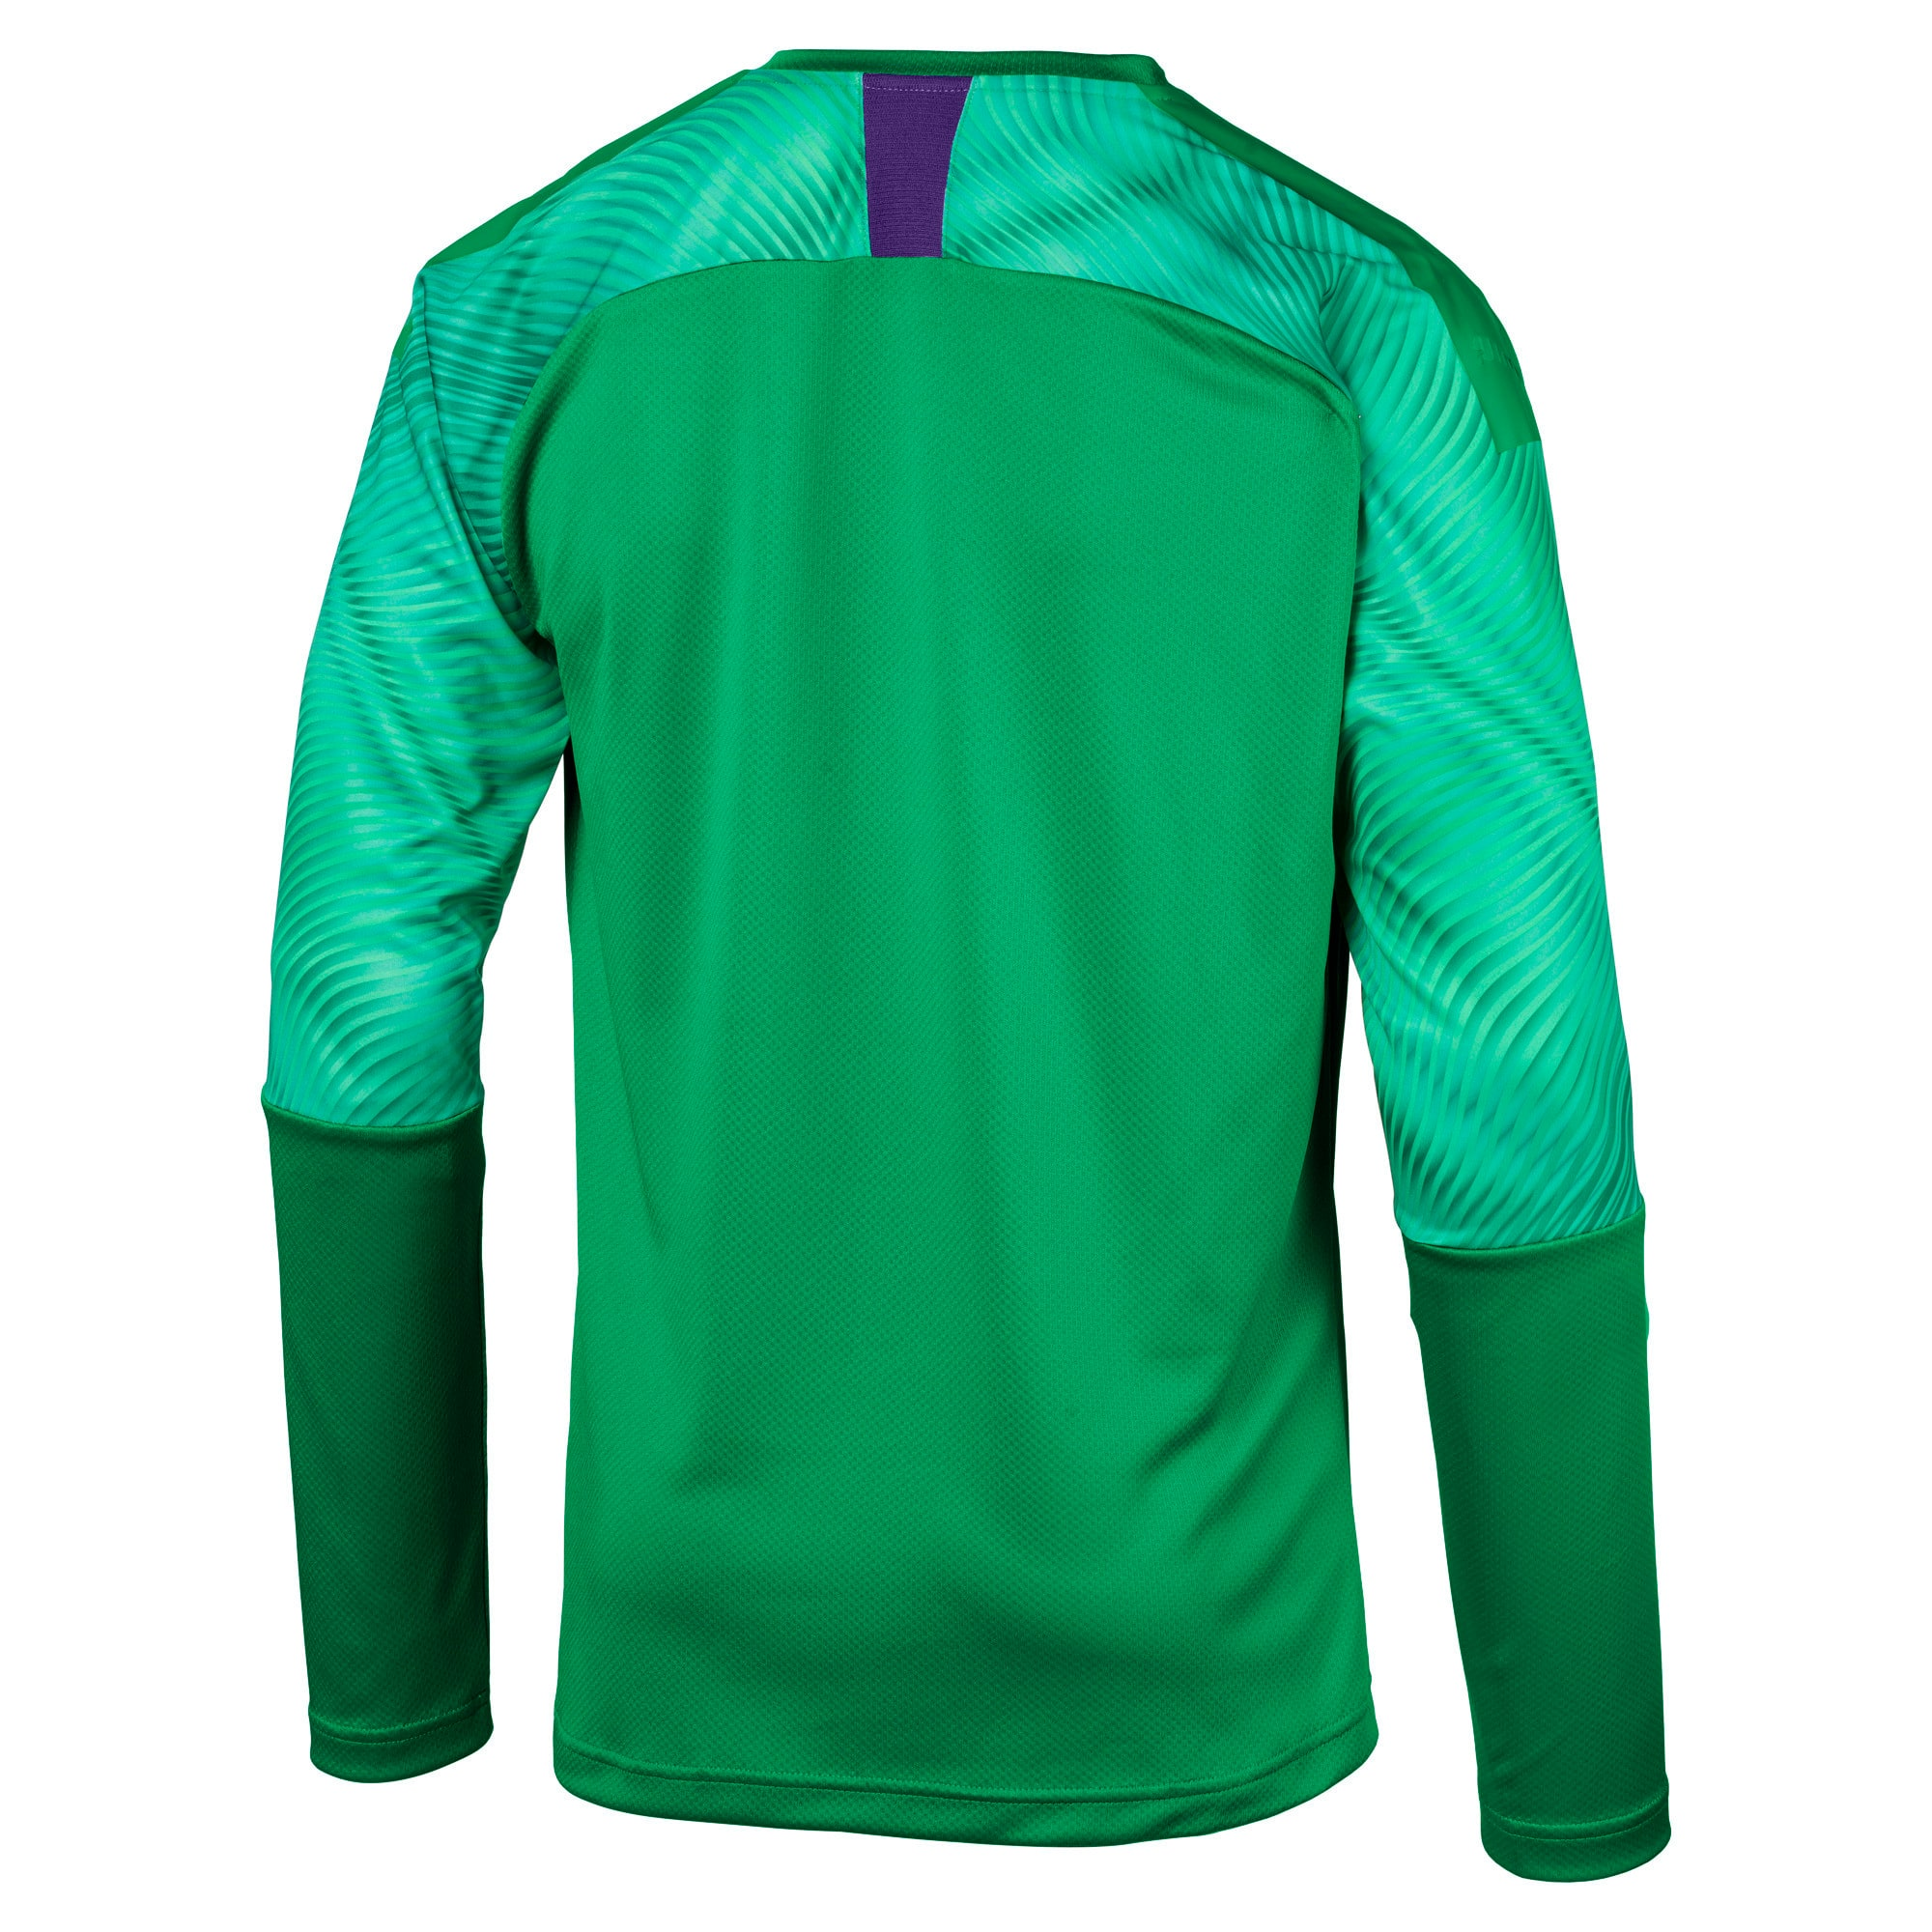 Thumbnail 5 of CUP Long Sleeve Men's Goalkeeper Jersey, Bright Green-Prism Violet, medium